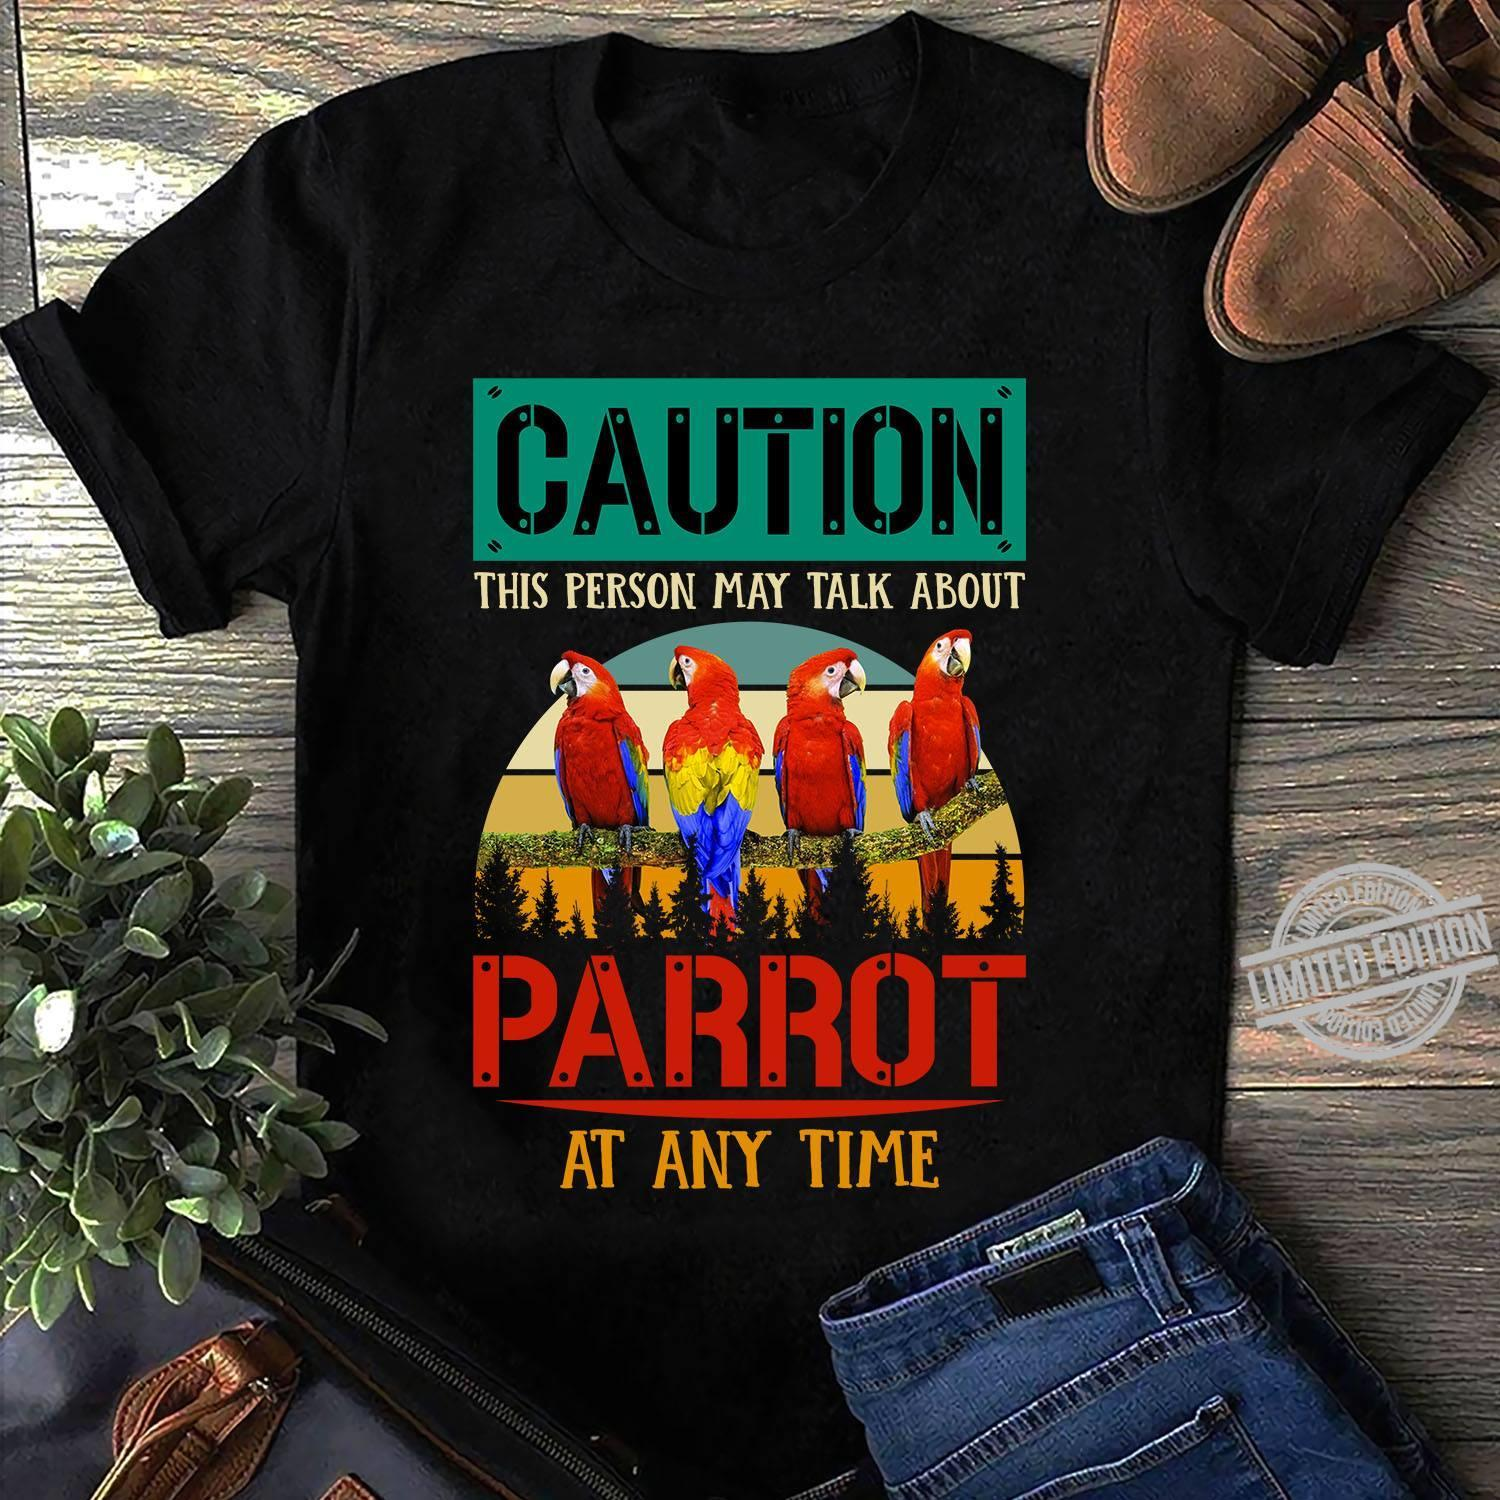 Caution This Person May Talk About Parrot At Any Time Shirt